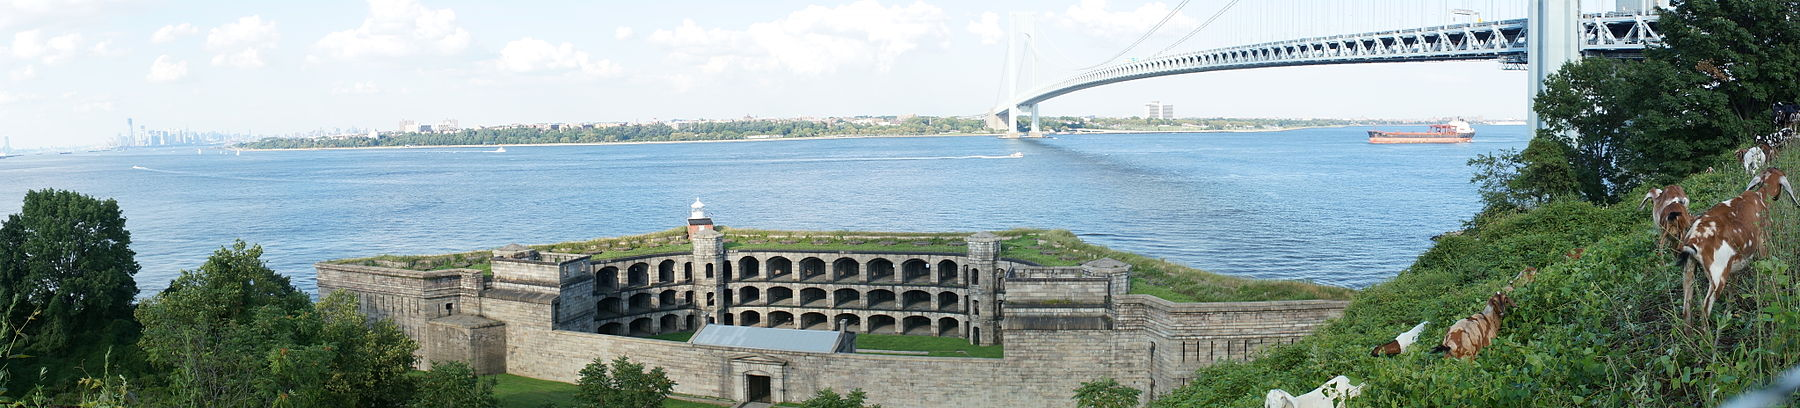 Verrazano-Narrows Bridge and Fort Wadsworth